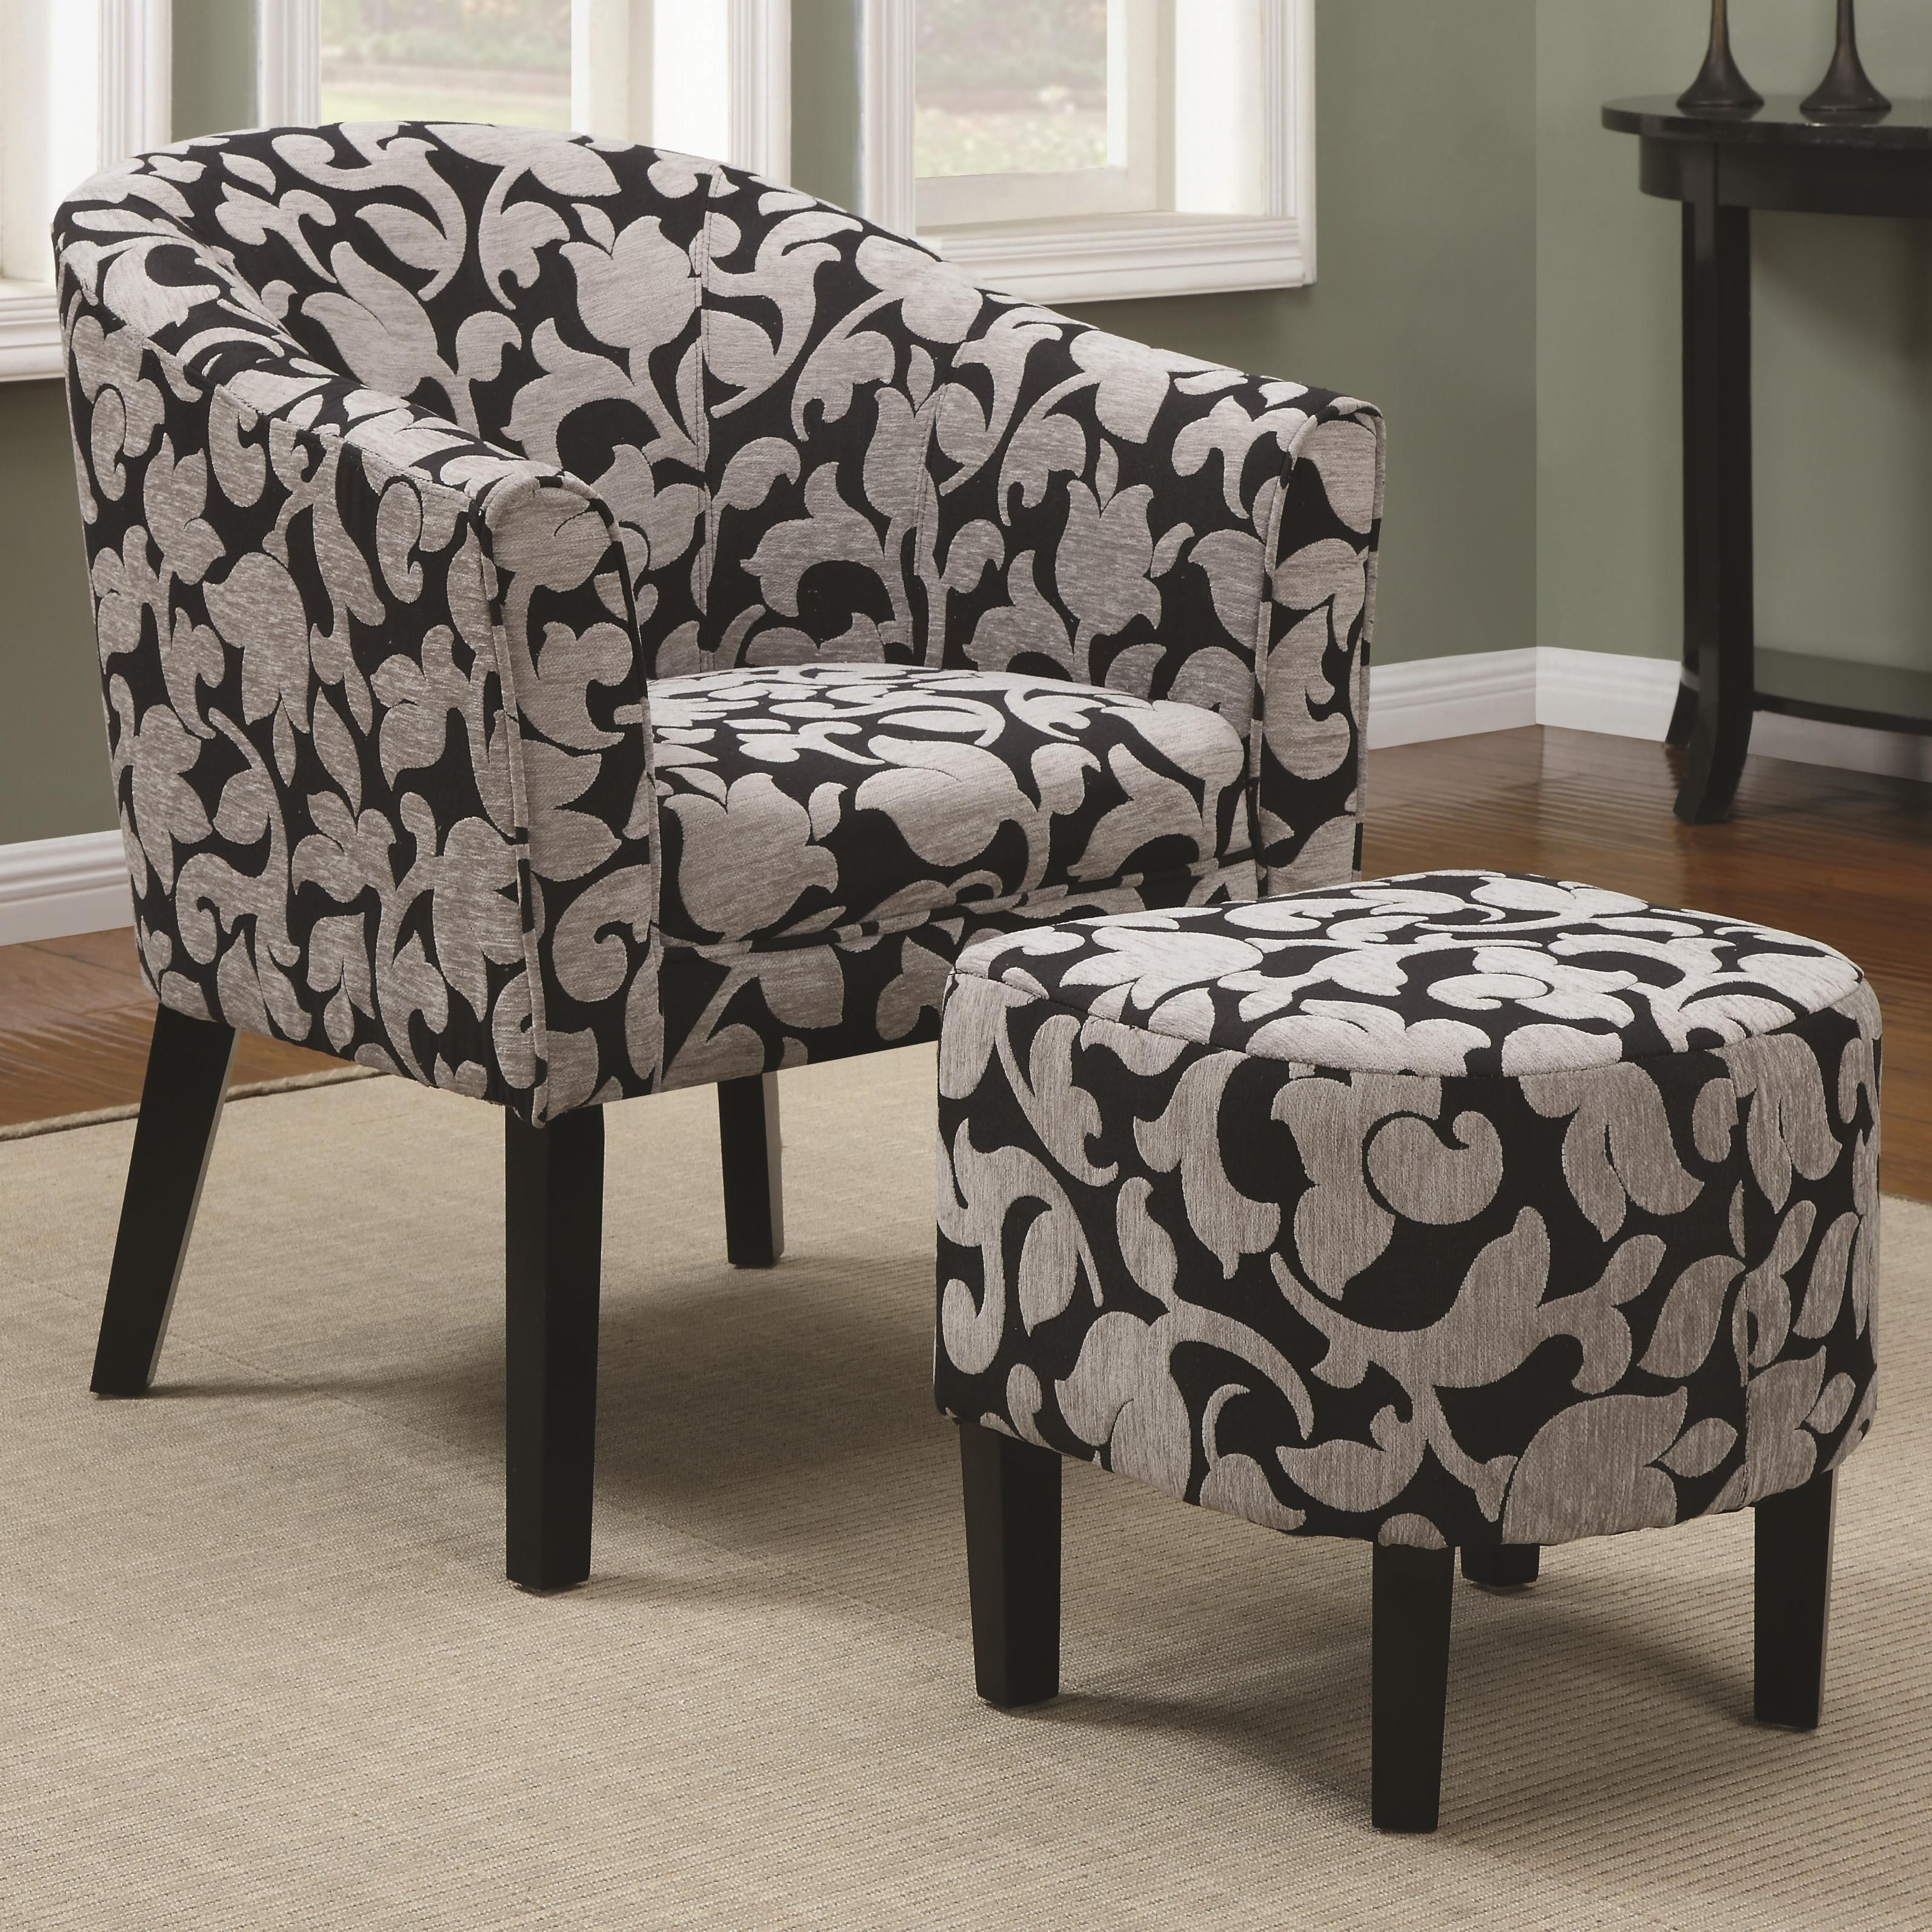 Accent seating accent barrel back chair black gray white i think ive settled on this one i think